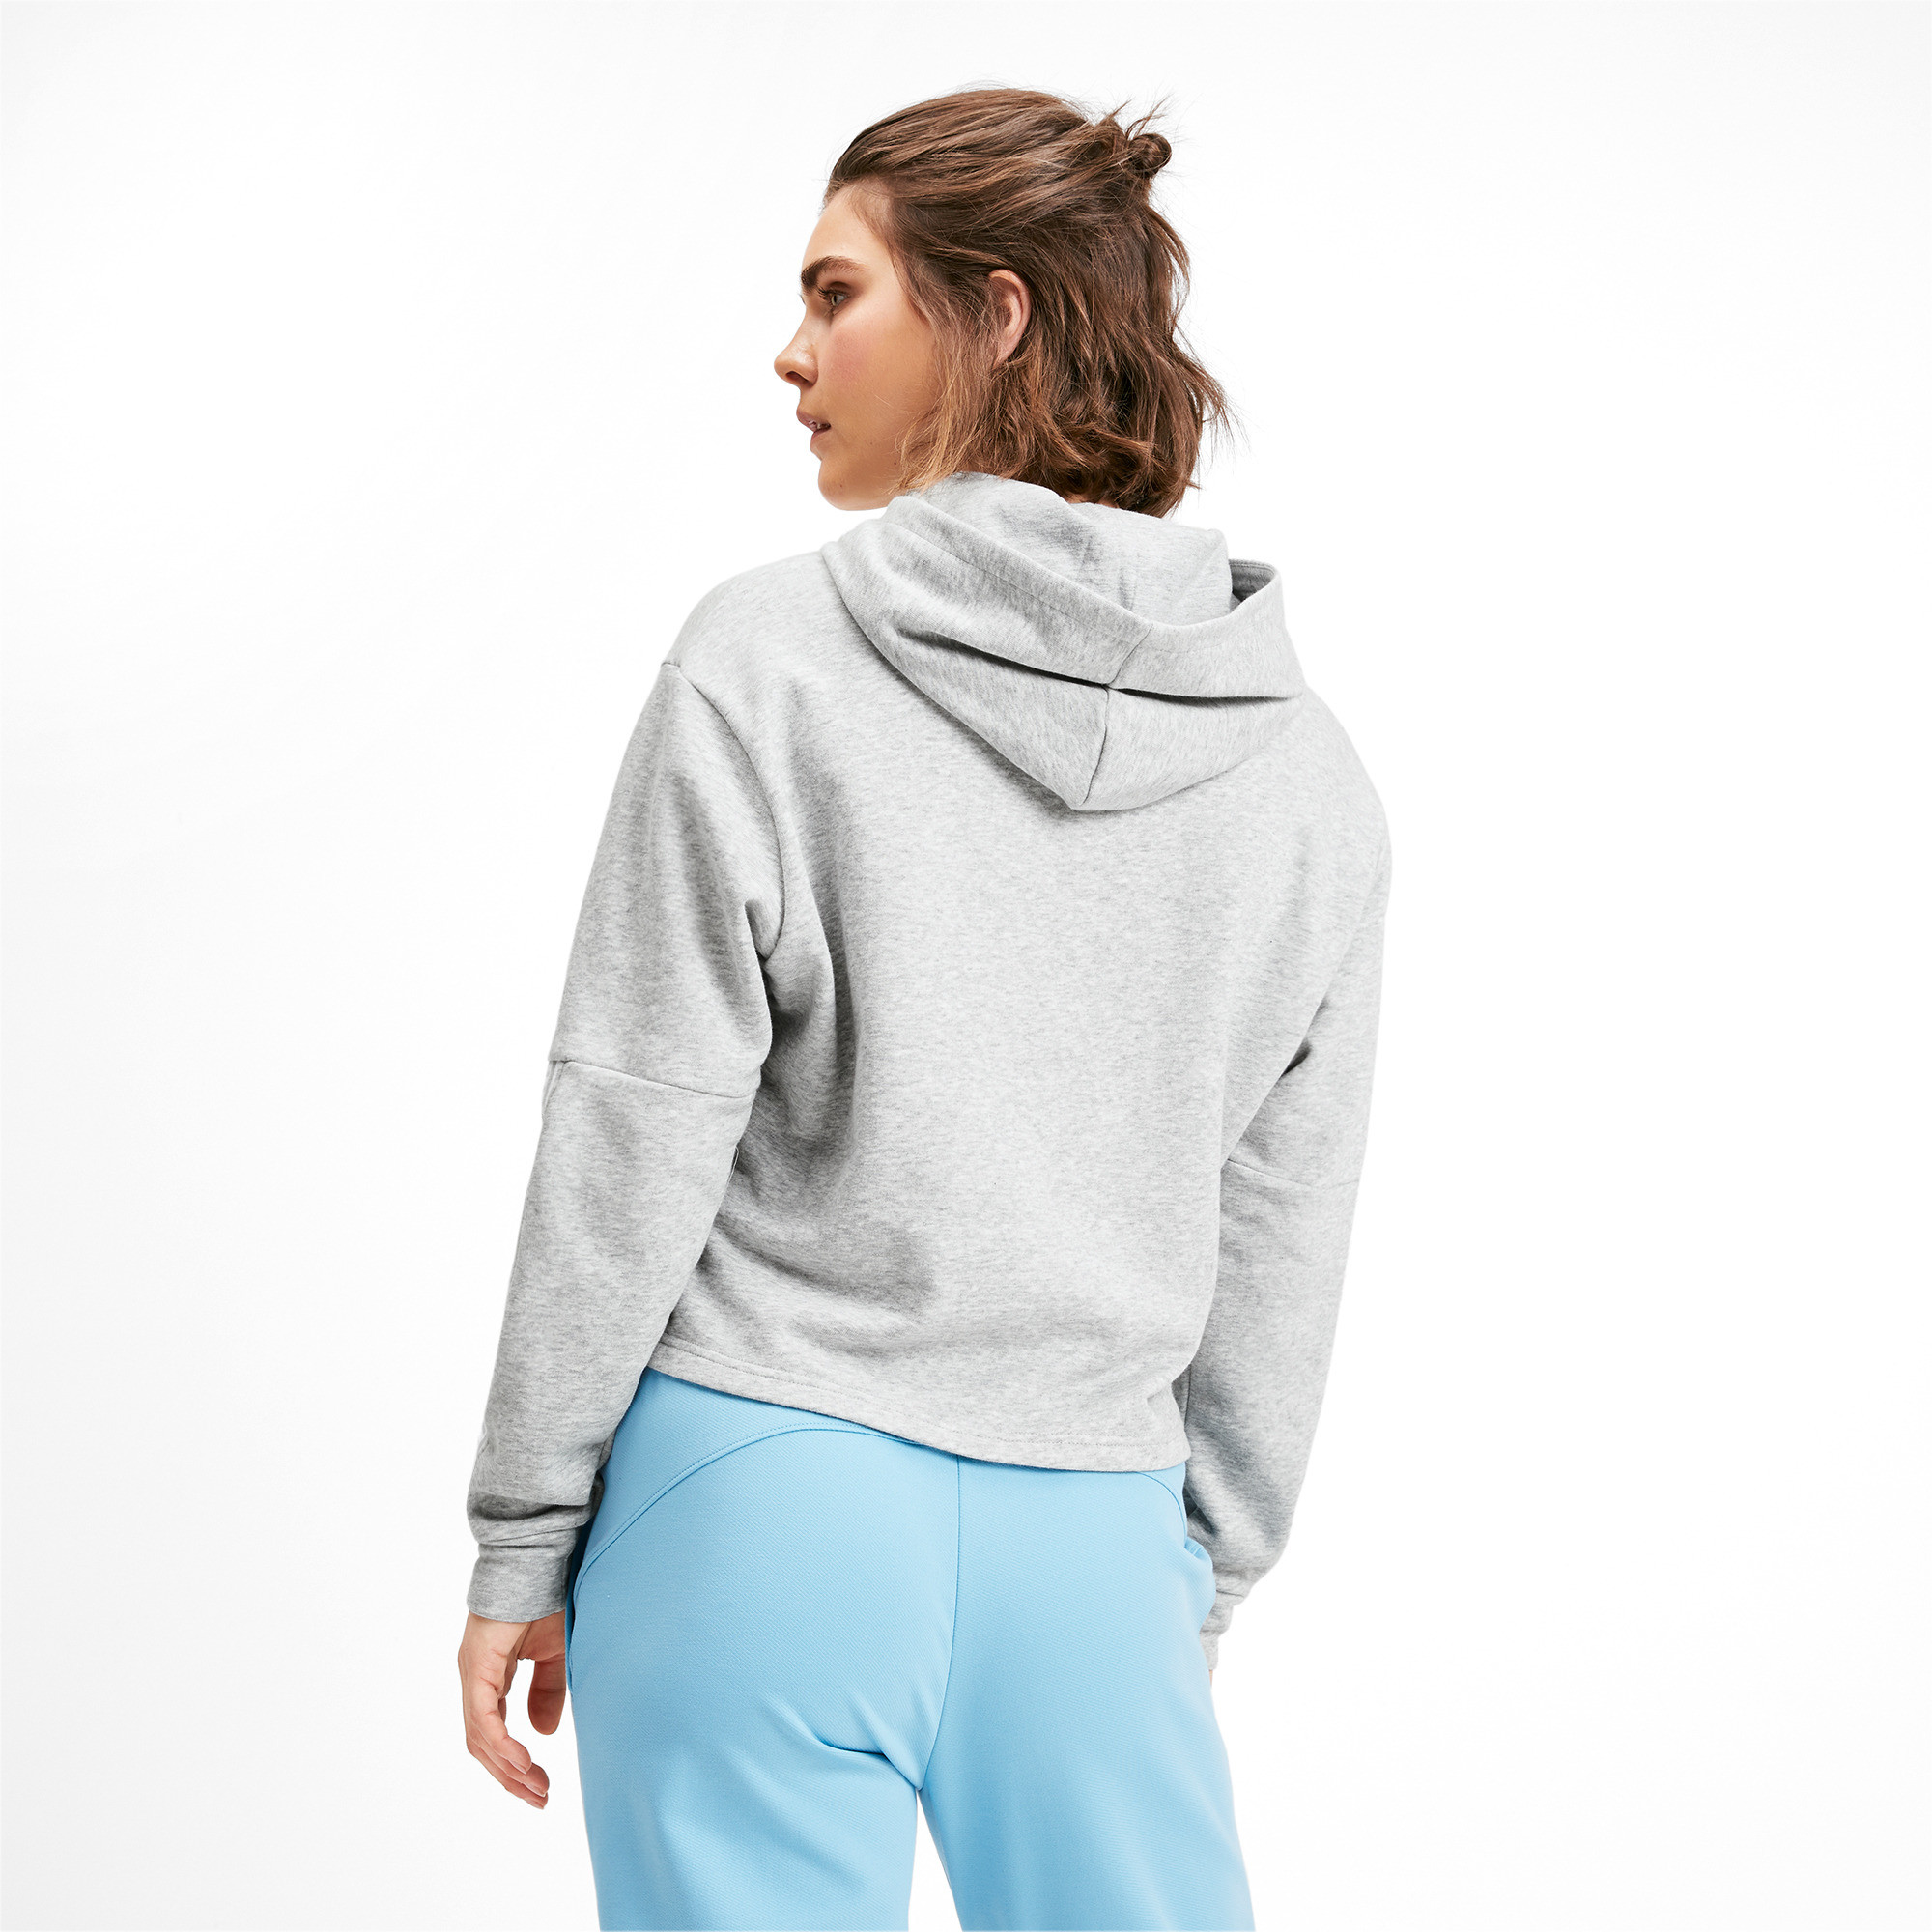 PUMA-Amplified-Women-039-s-Cropped-Hoodie-Women-Sweat-Basics thumbnail 15